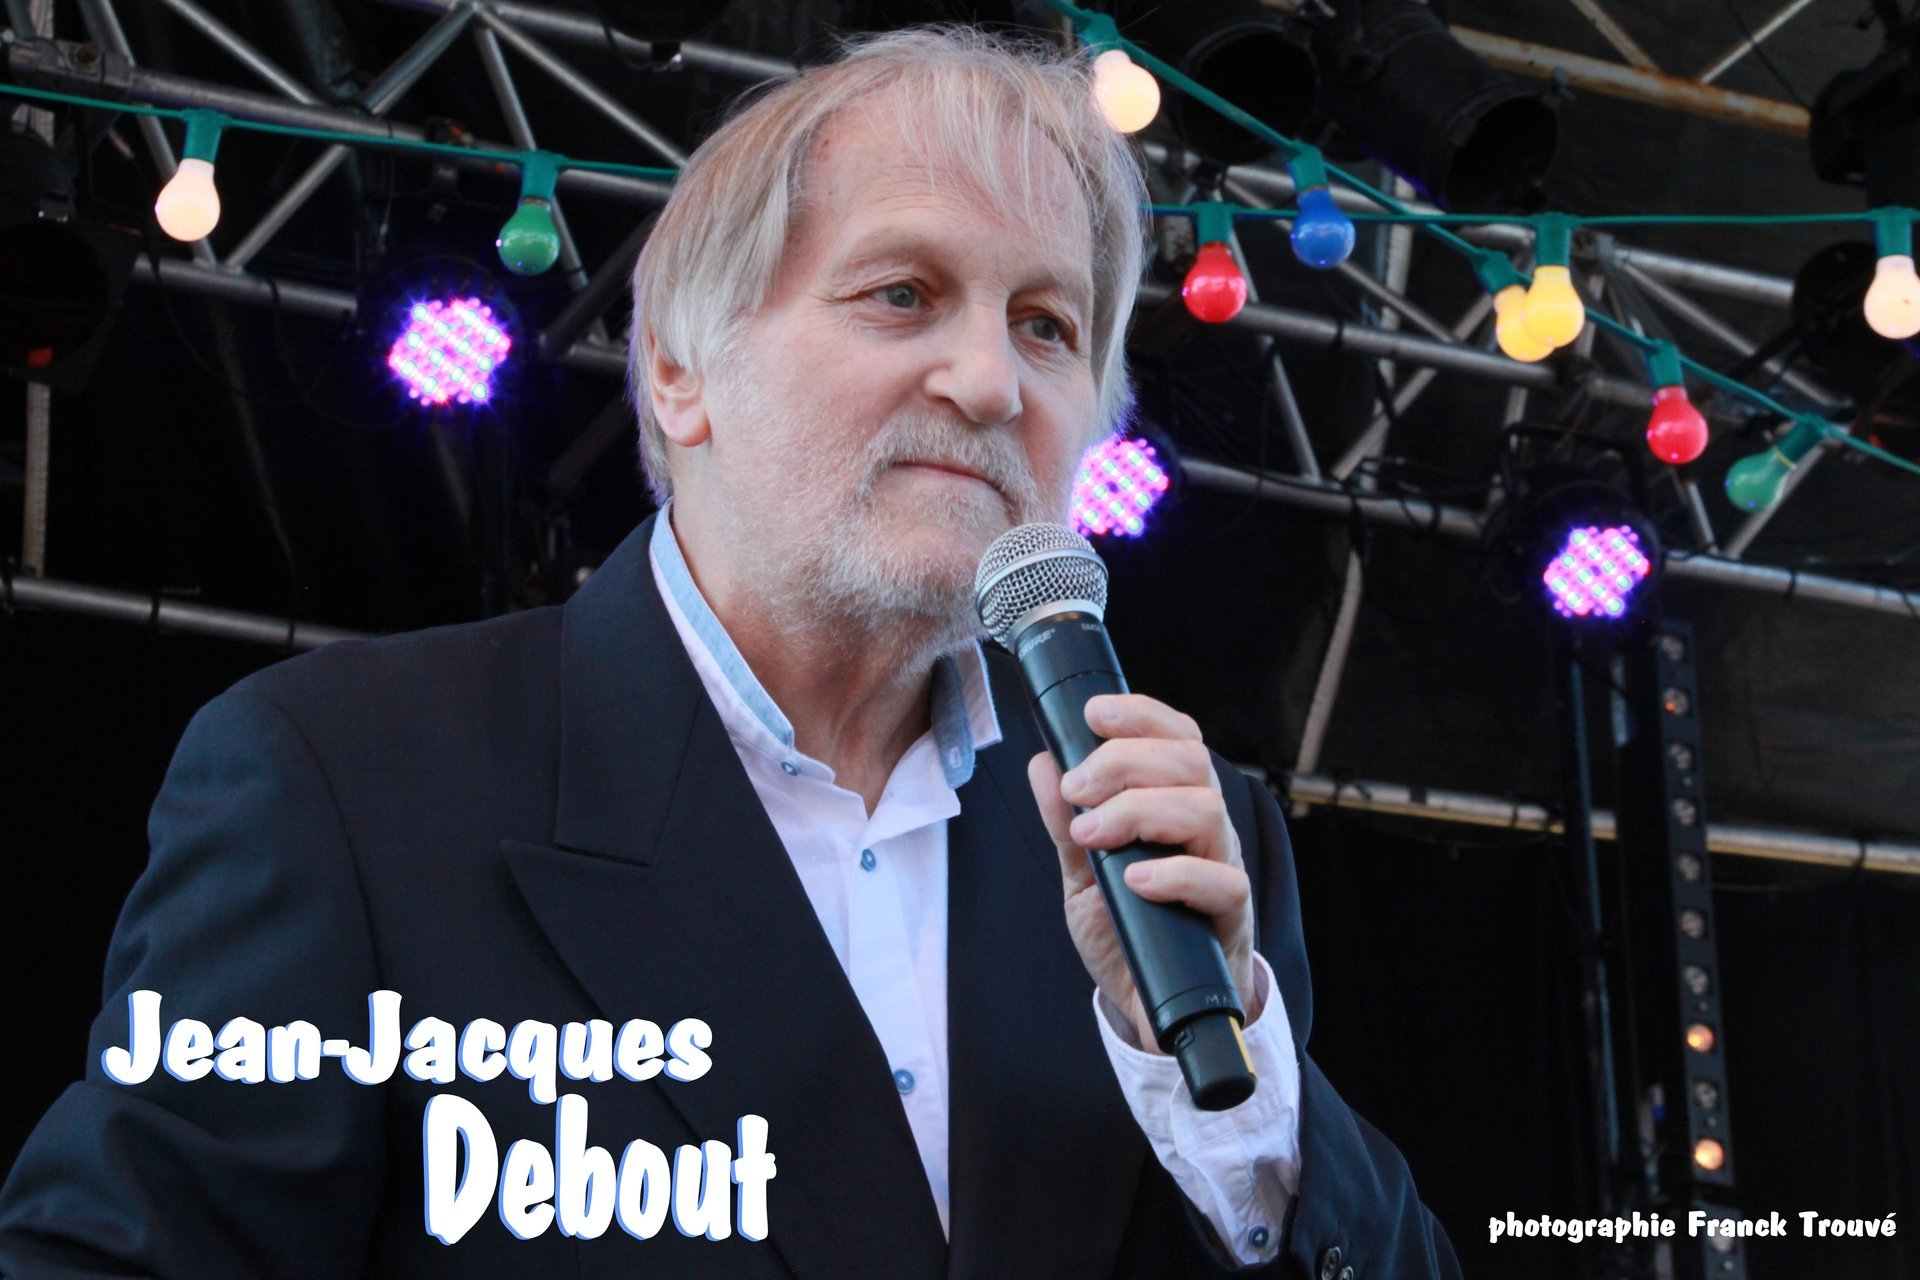 jean jacques debout photo franck trouve